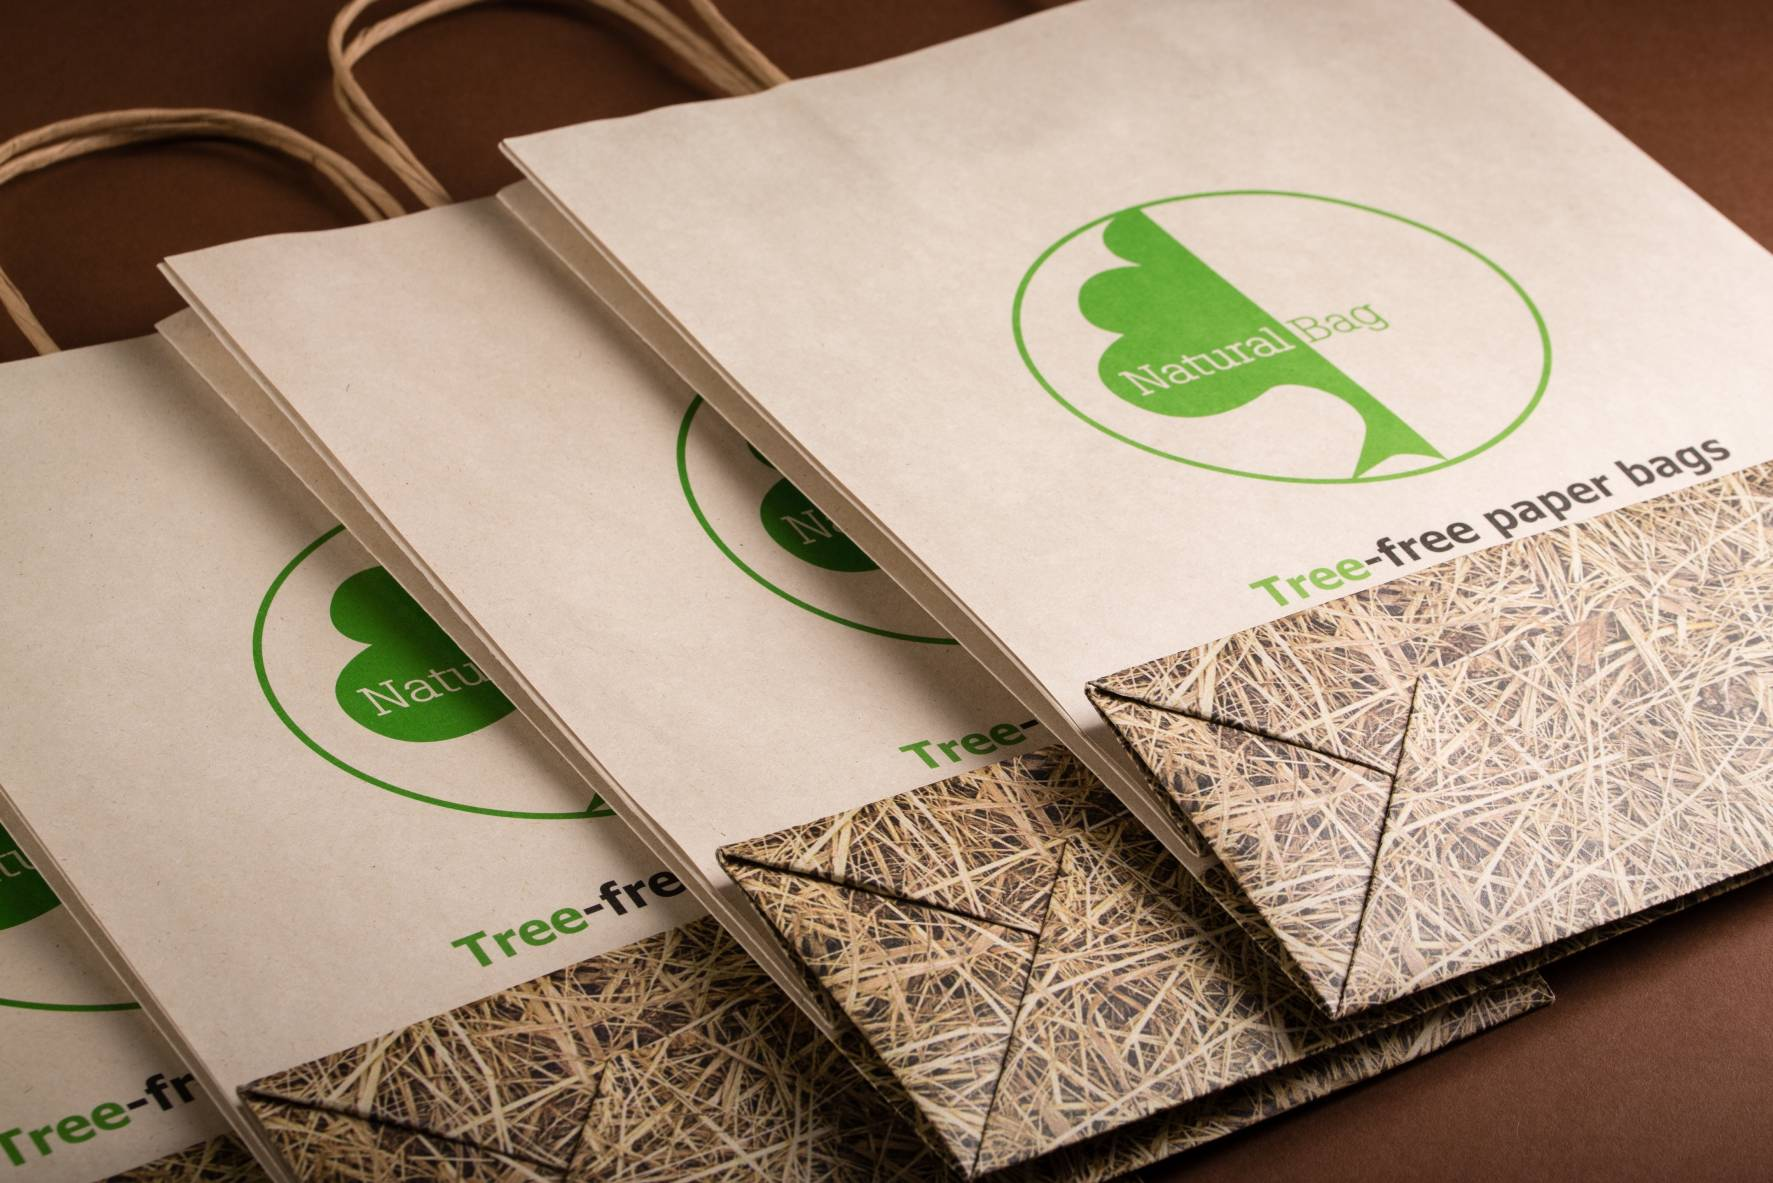 Natural Bag - Tree free paper bag 2